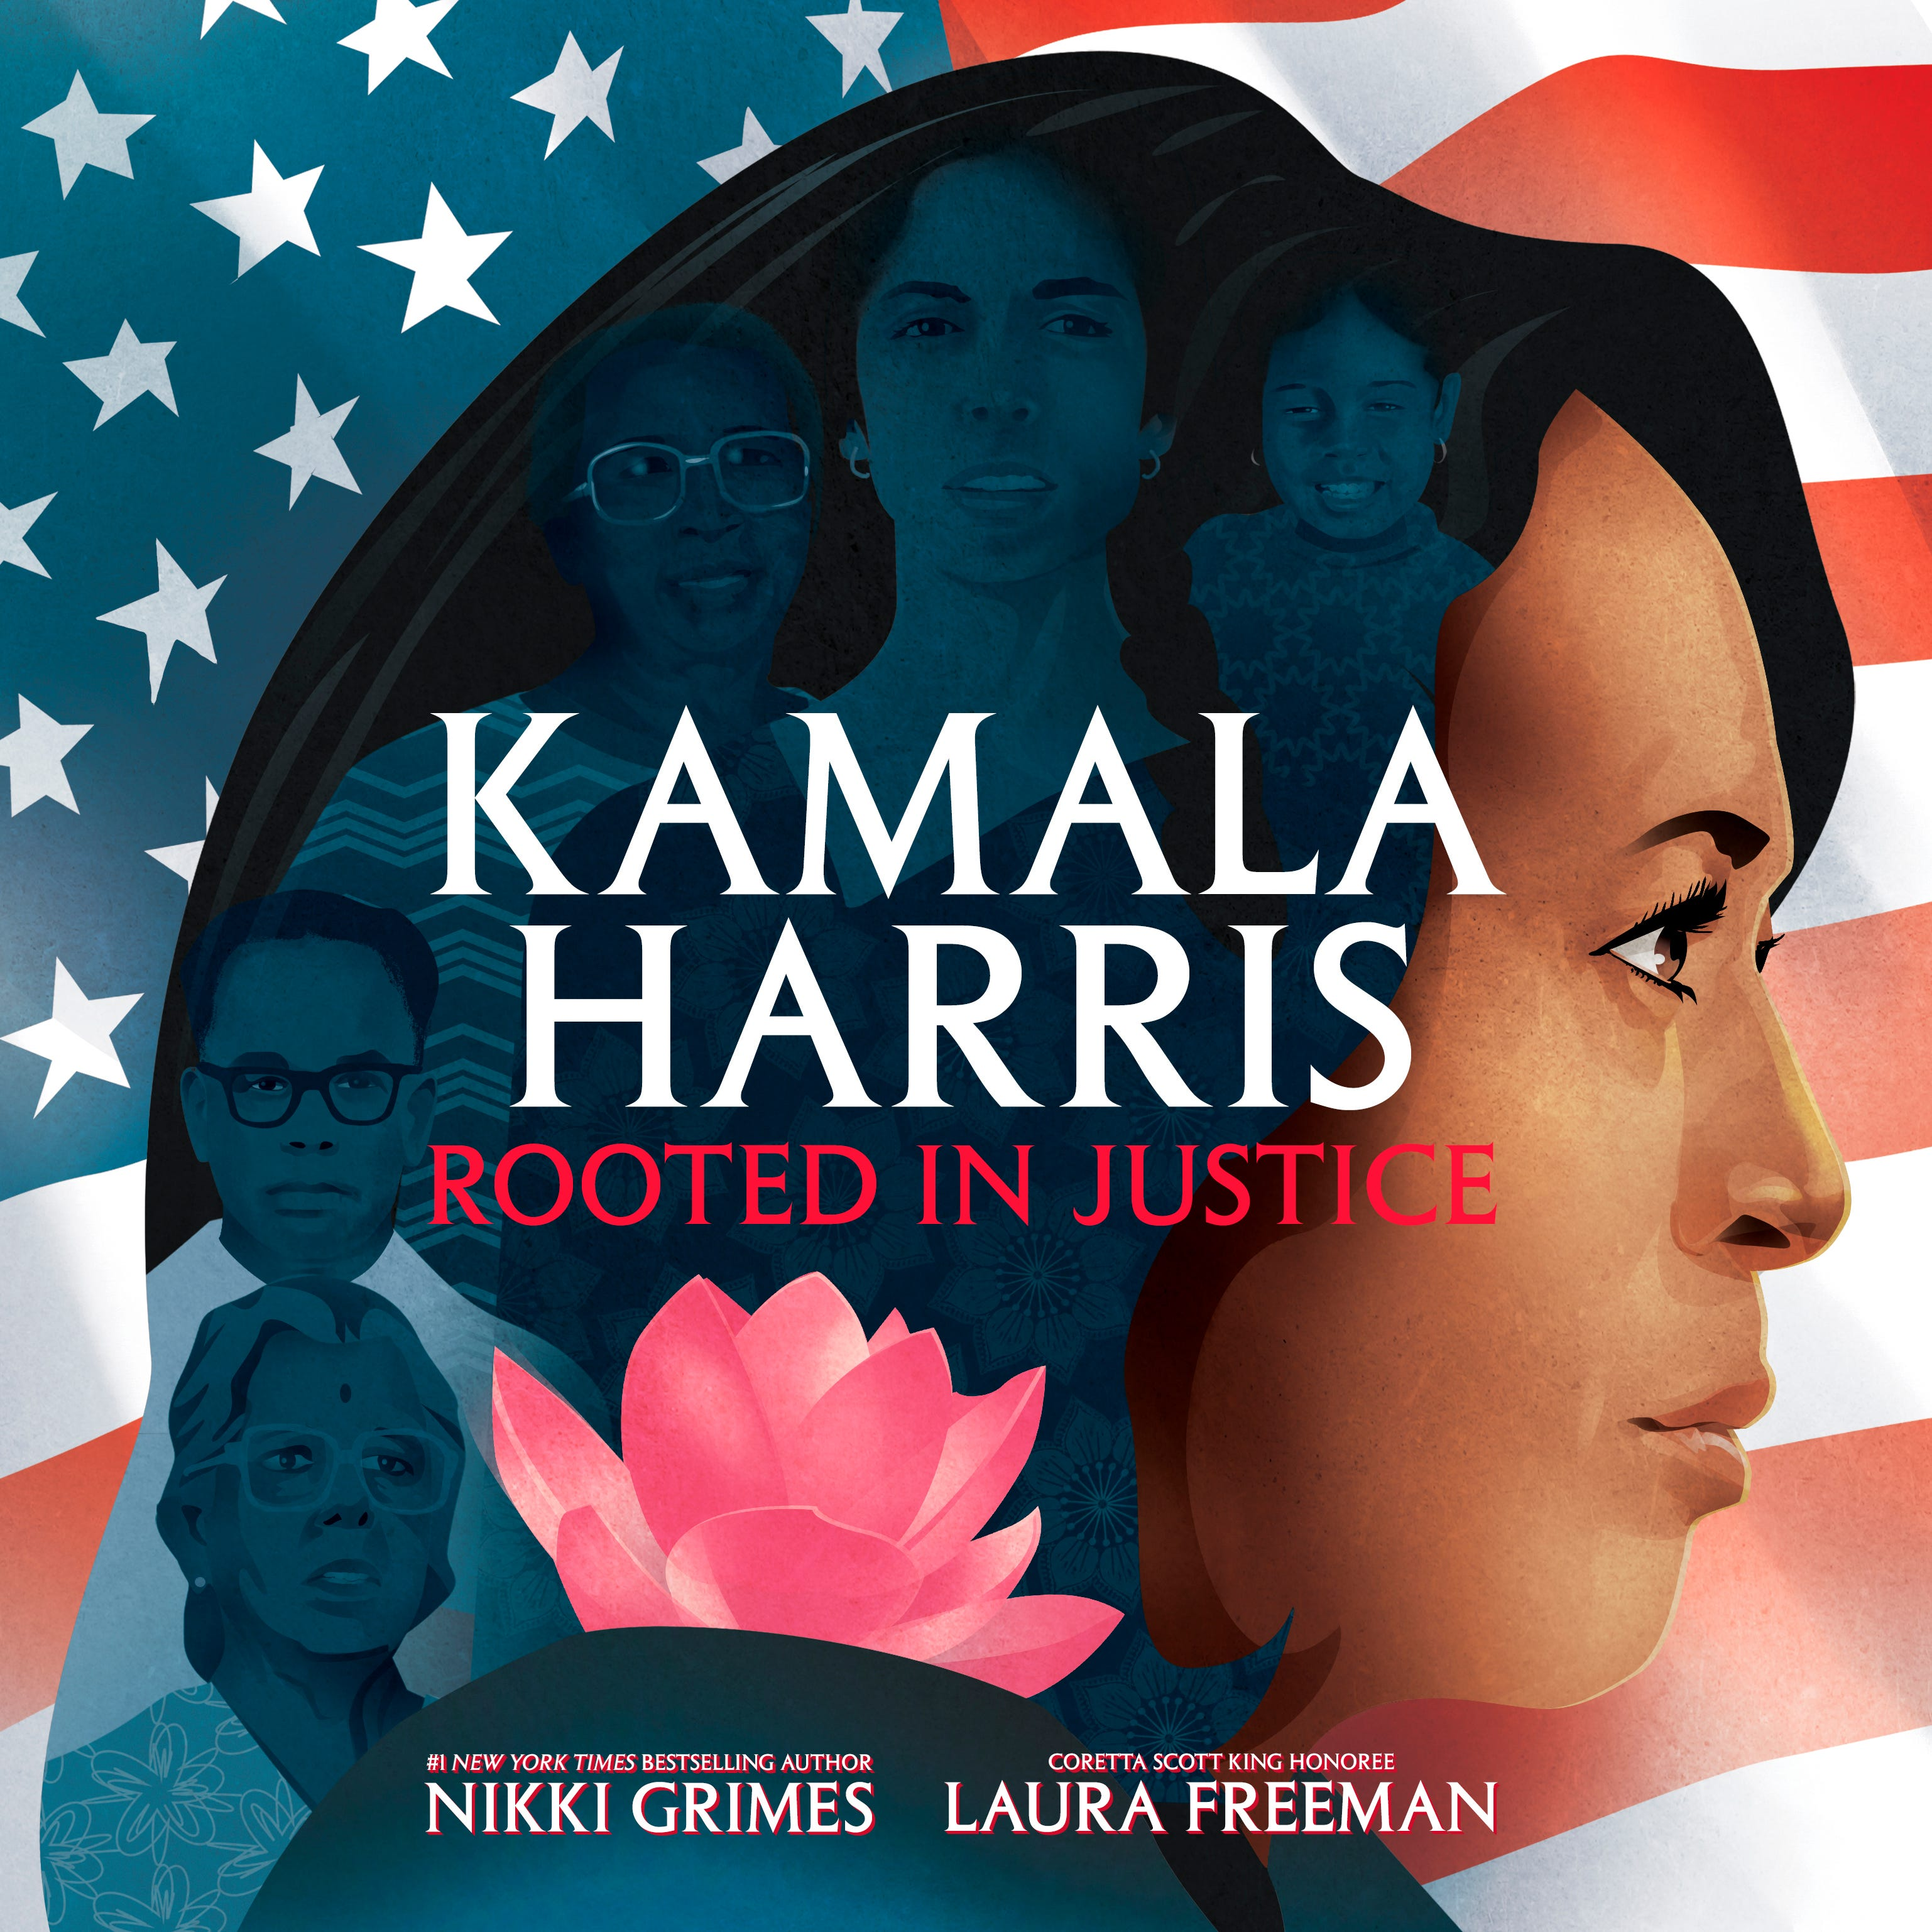 Kamala Harris children's picture book 'Rooted in Justice' coming soon